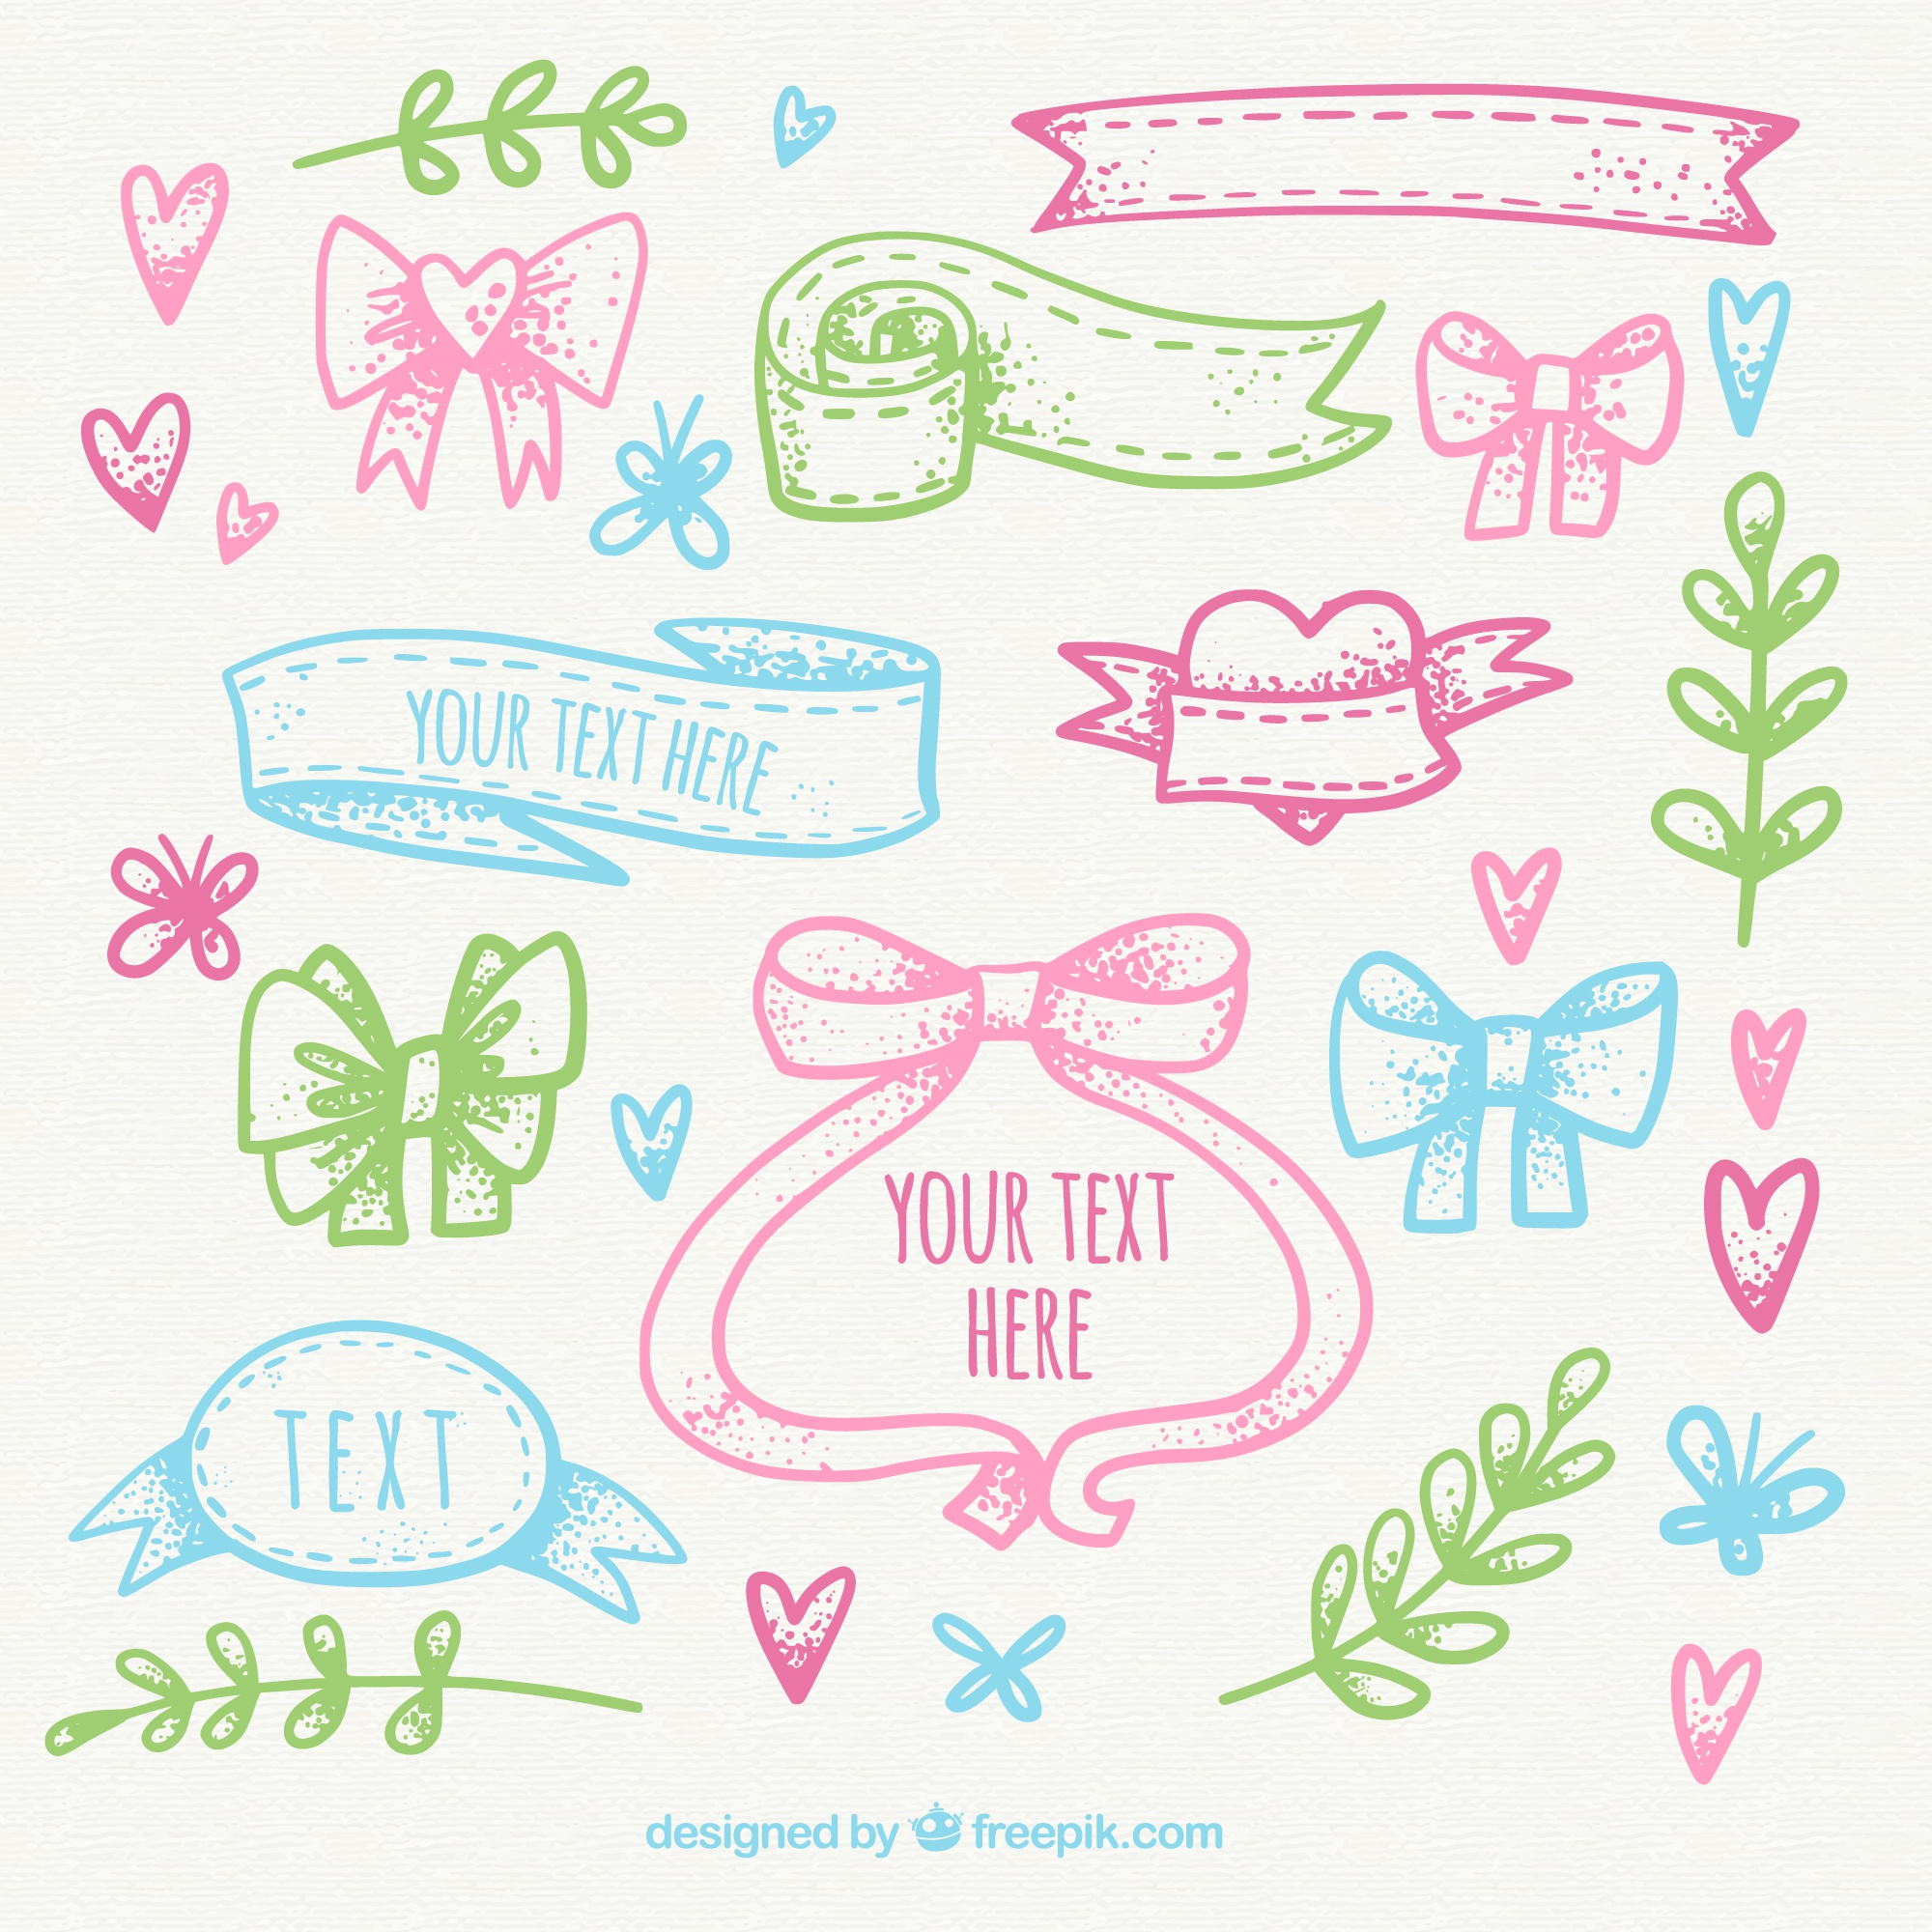 Hand-drawn collection of colored ornaments and ribbons